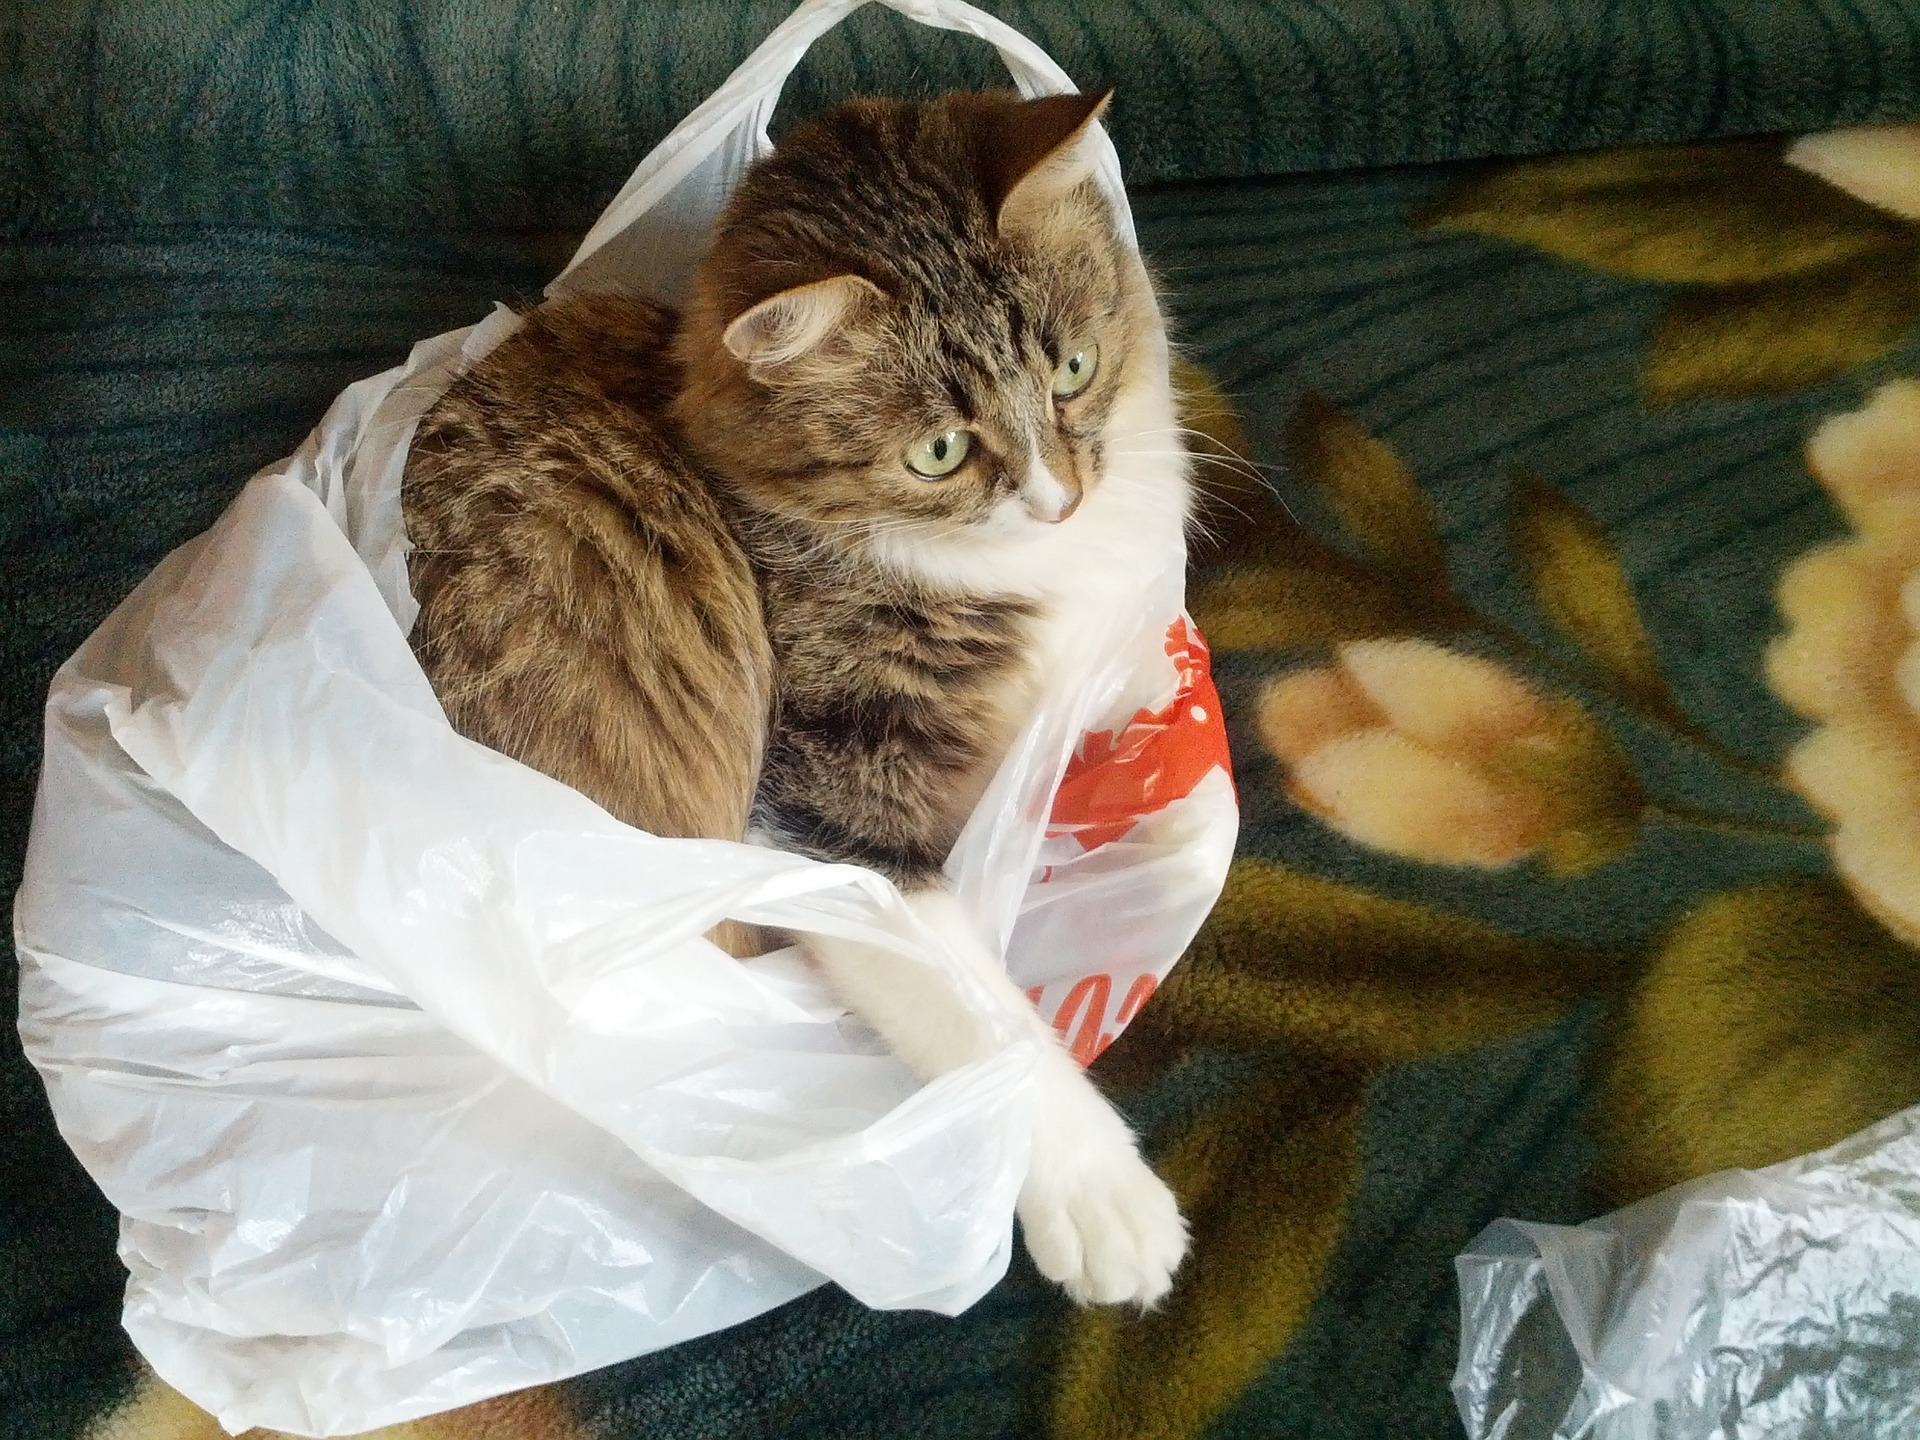 why do cats like to lay on plastic bags